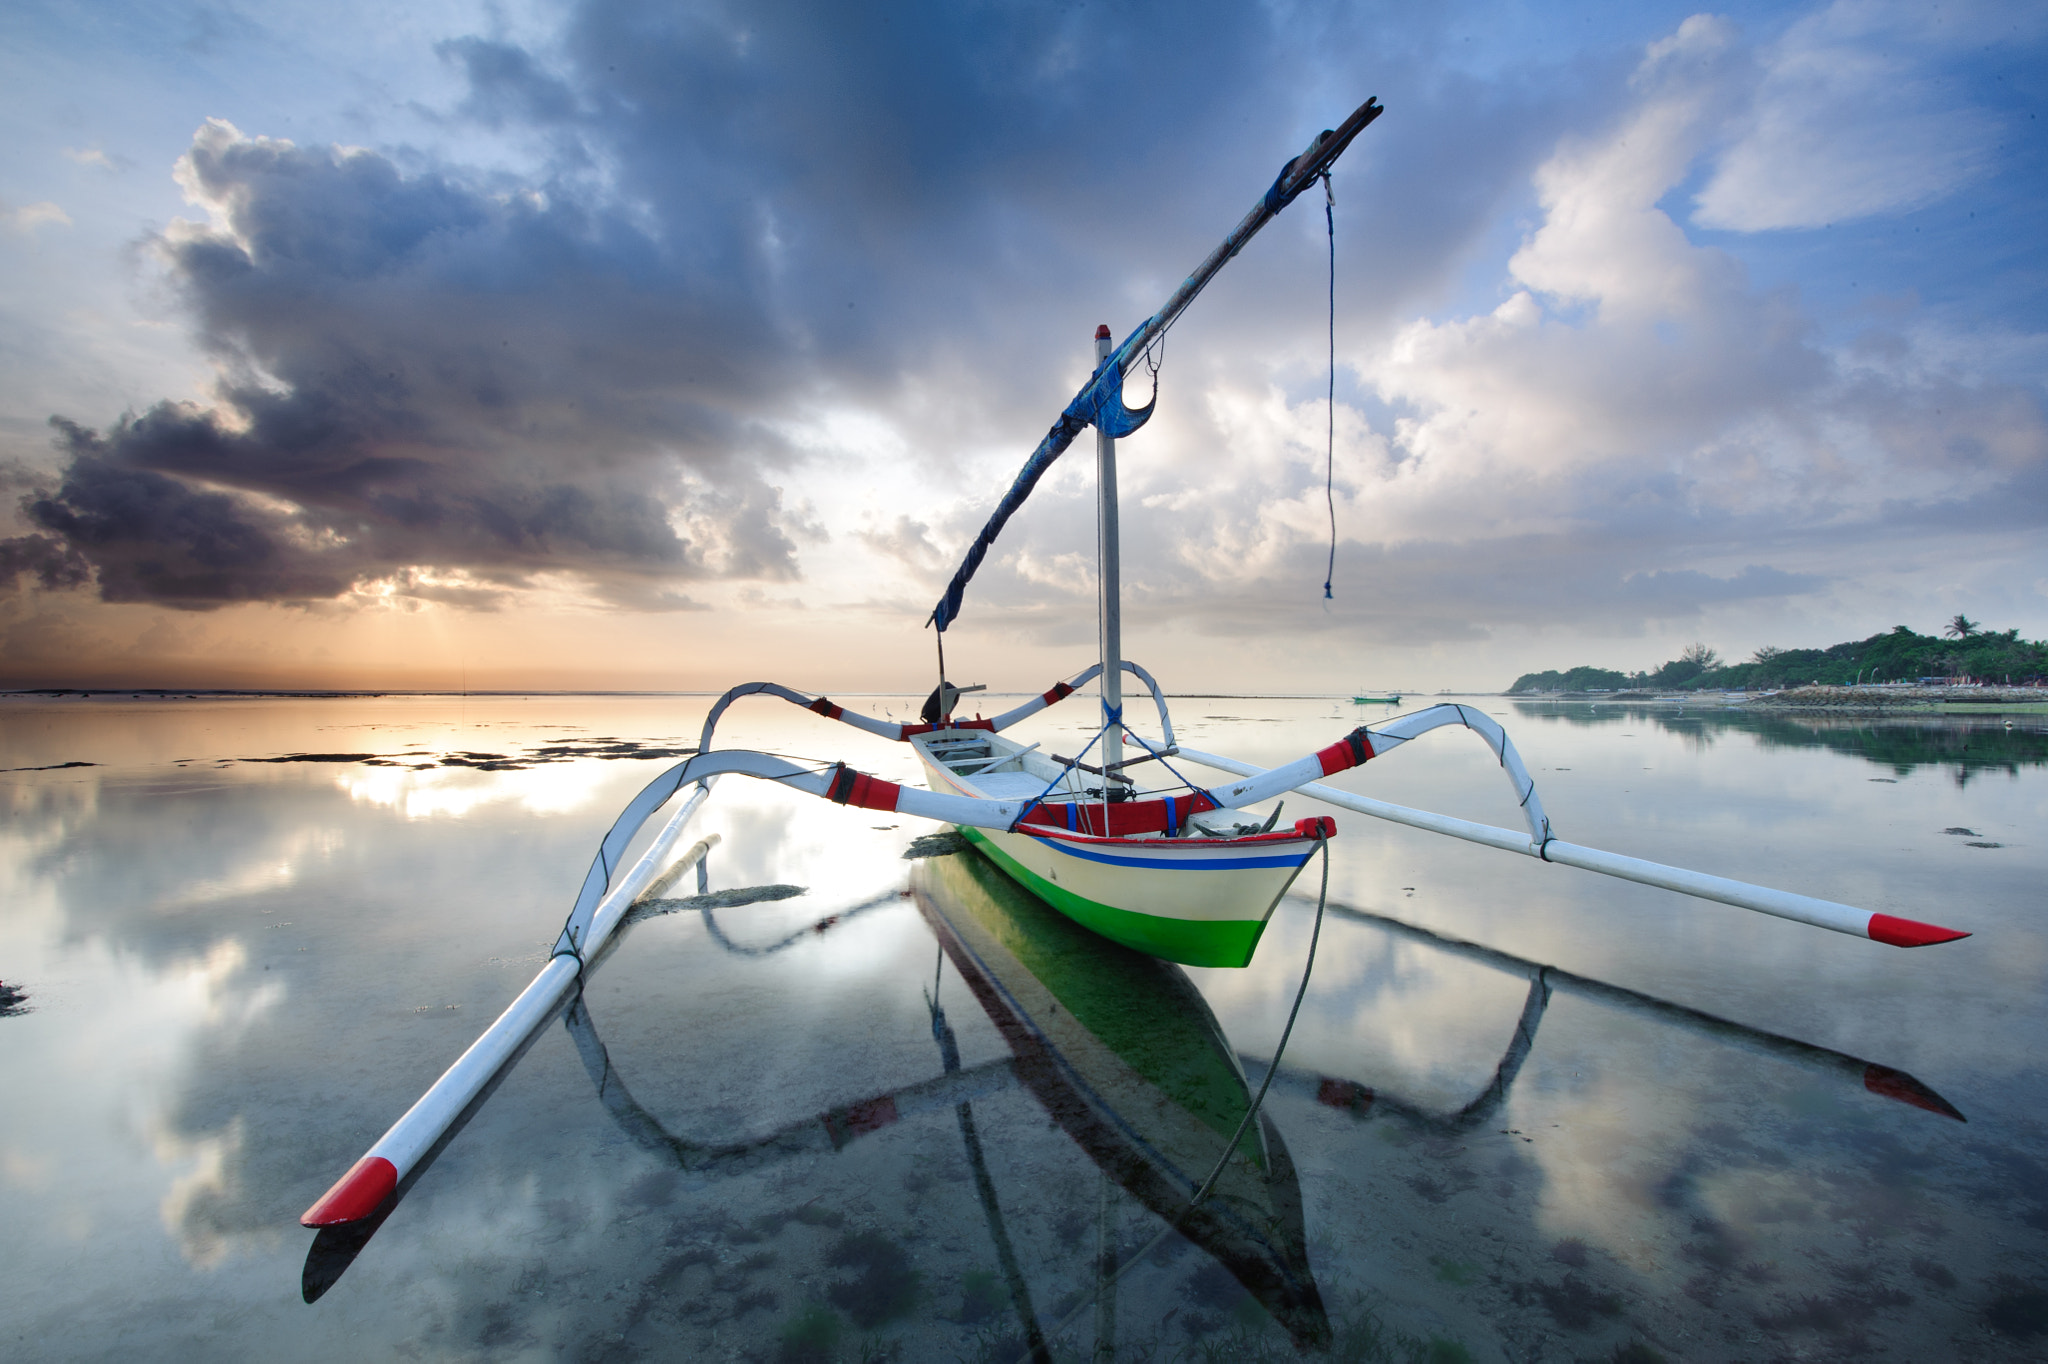 Photograph The Boat by Iswani Jamani on 500px